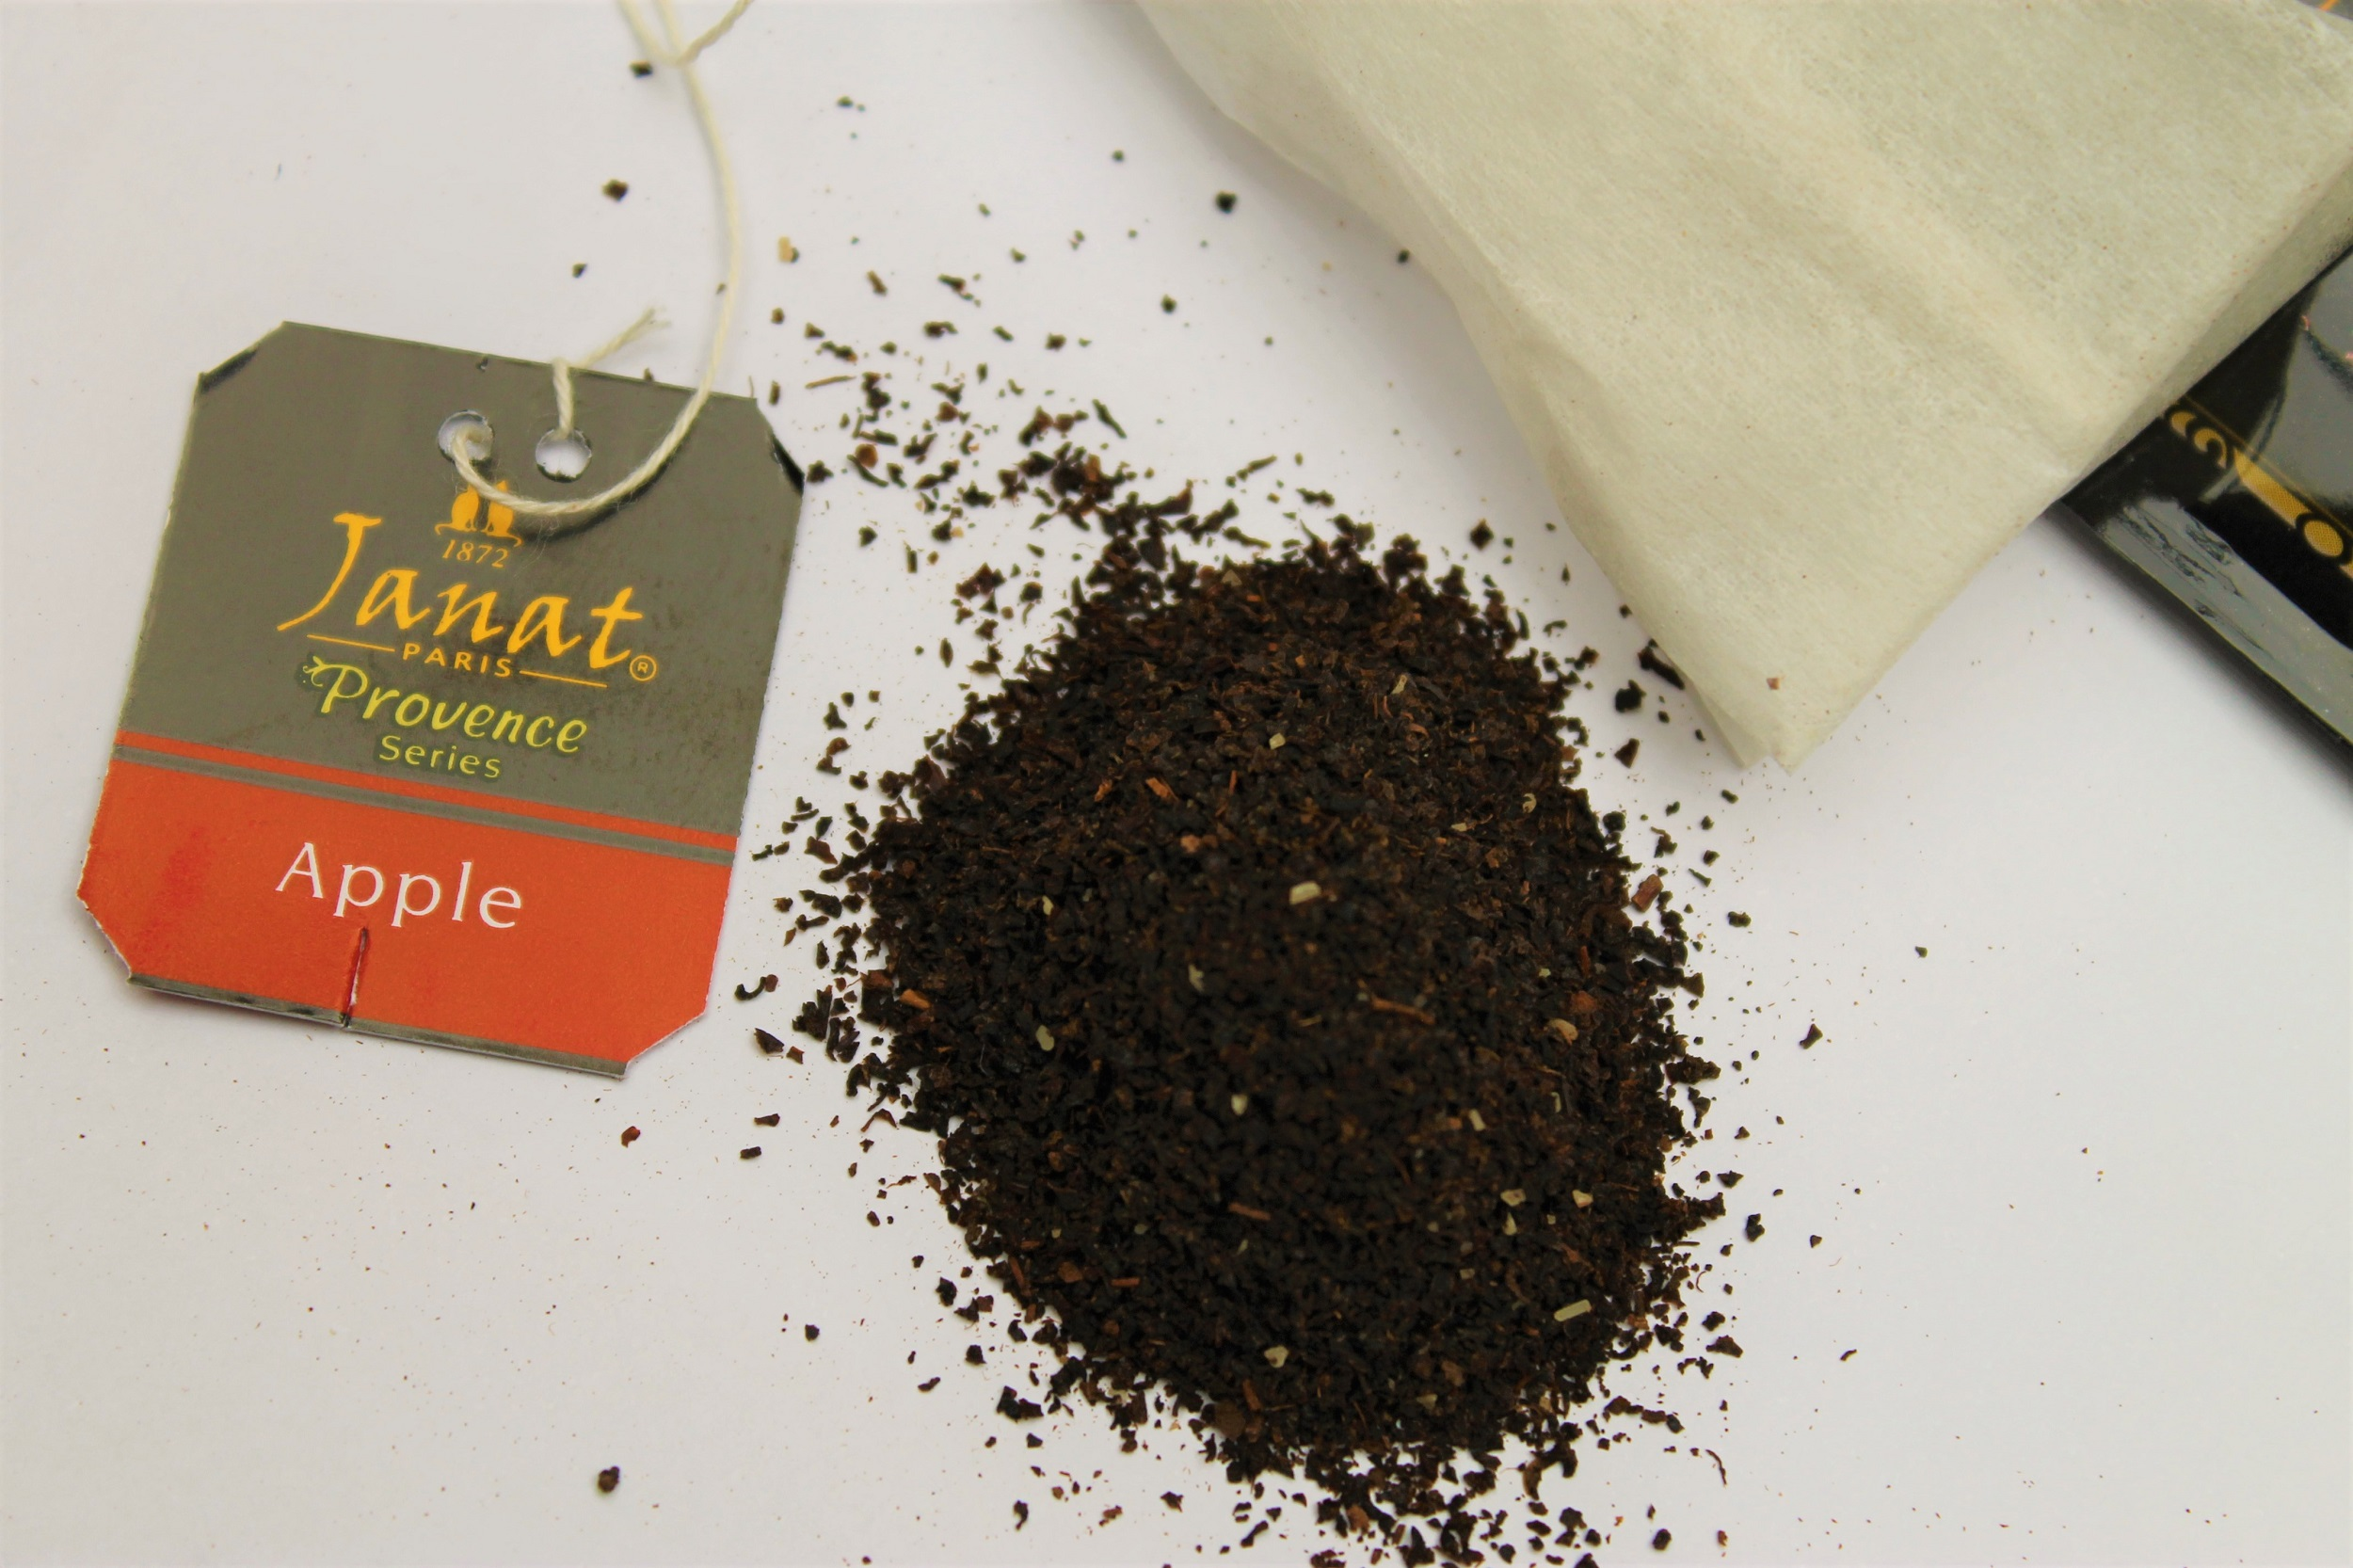 black tea with apple flavouring